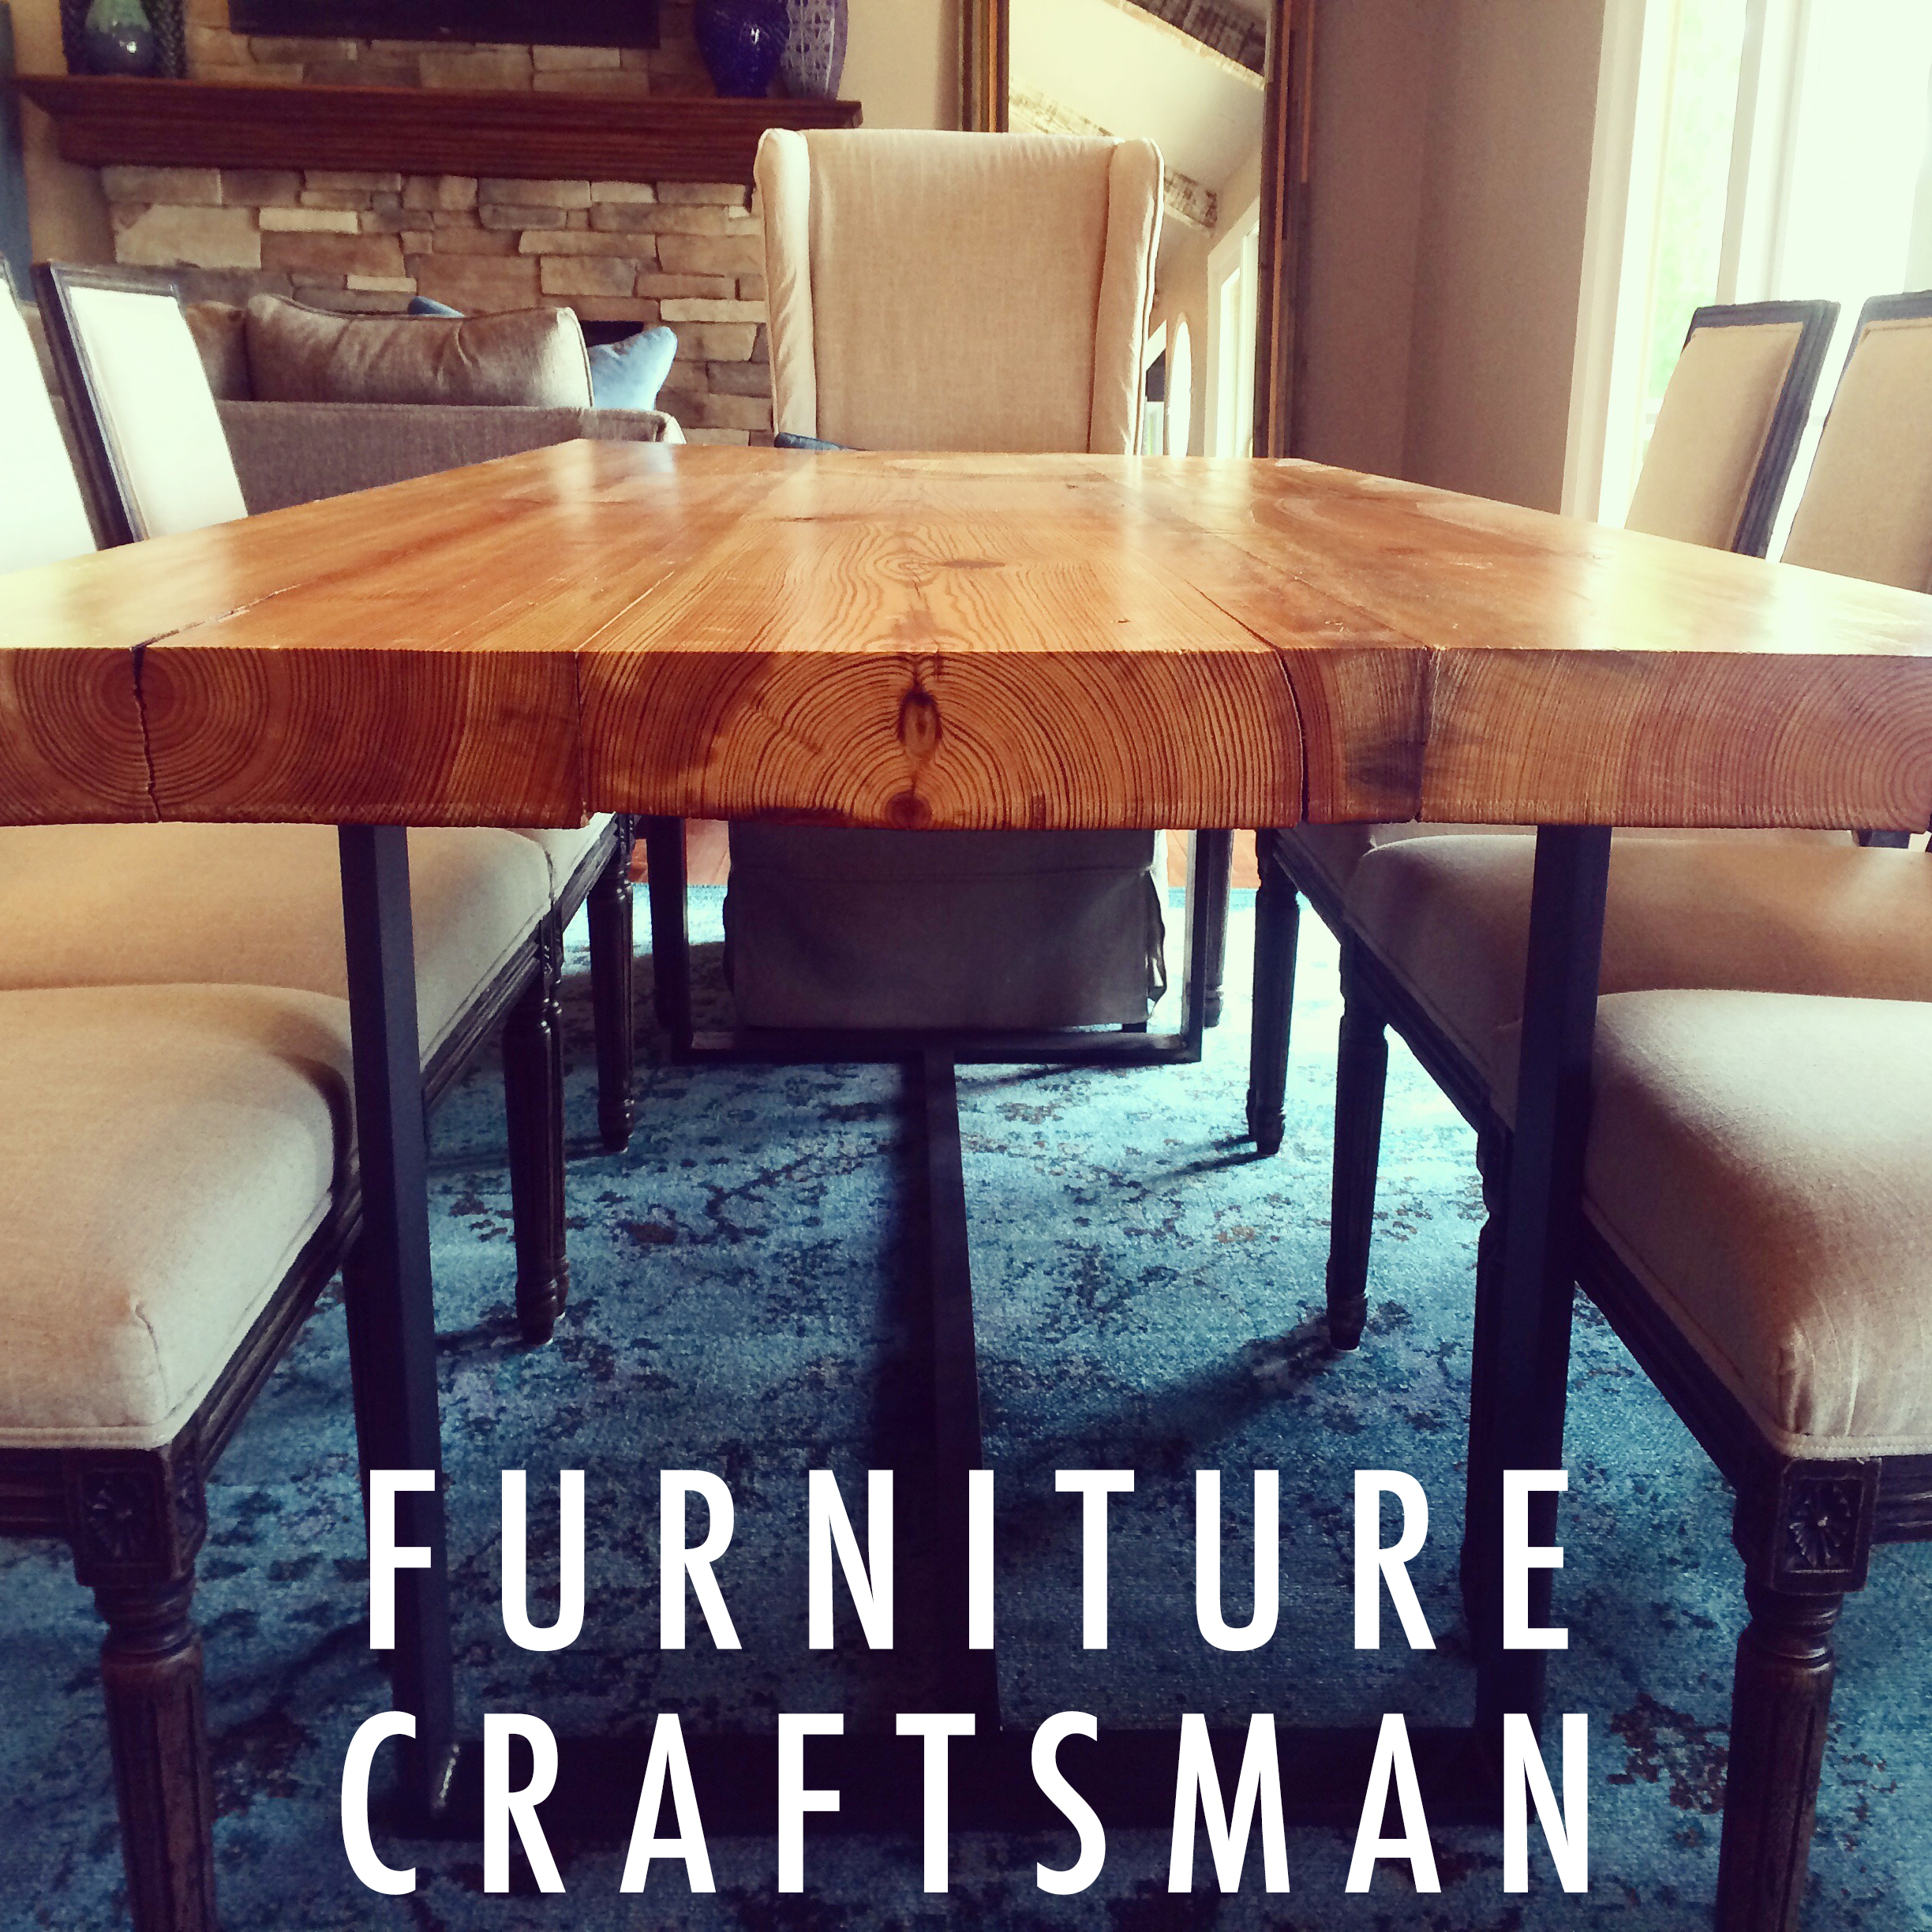 FURNITURE CRAFTSMAN.jpg